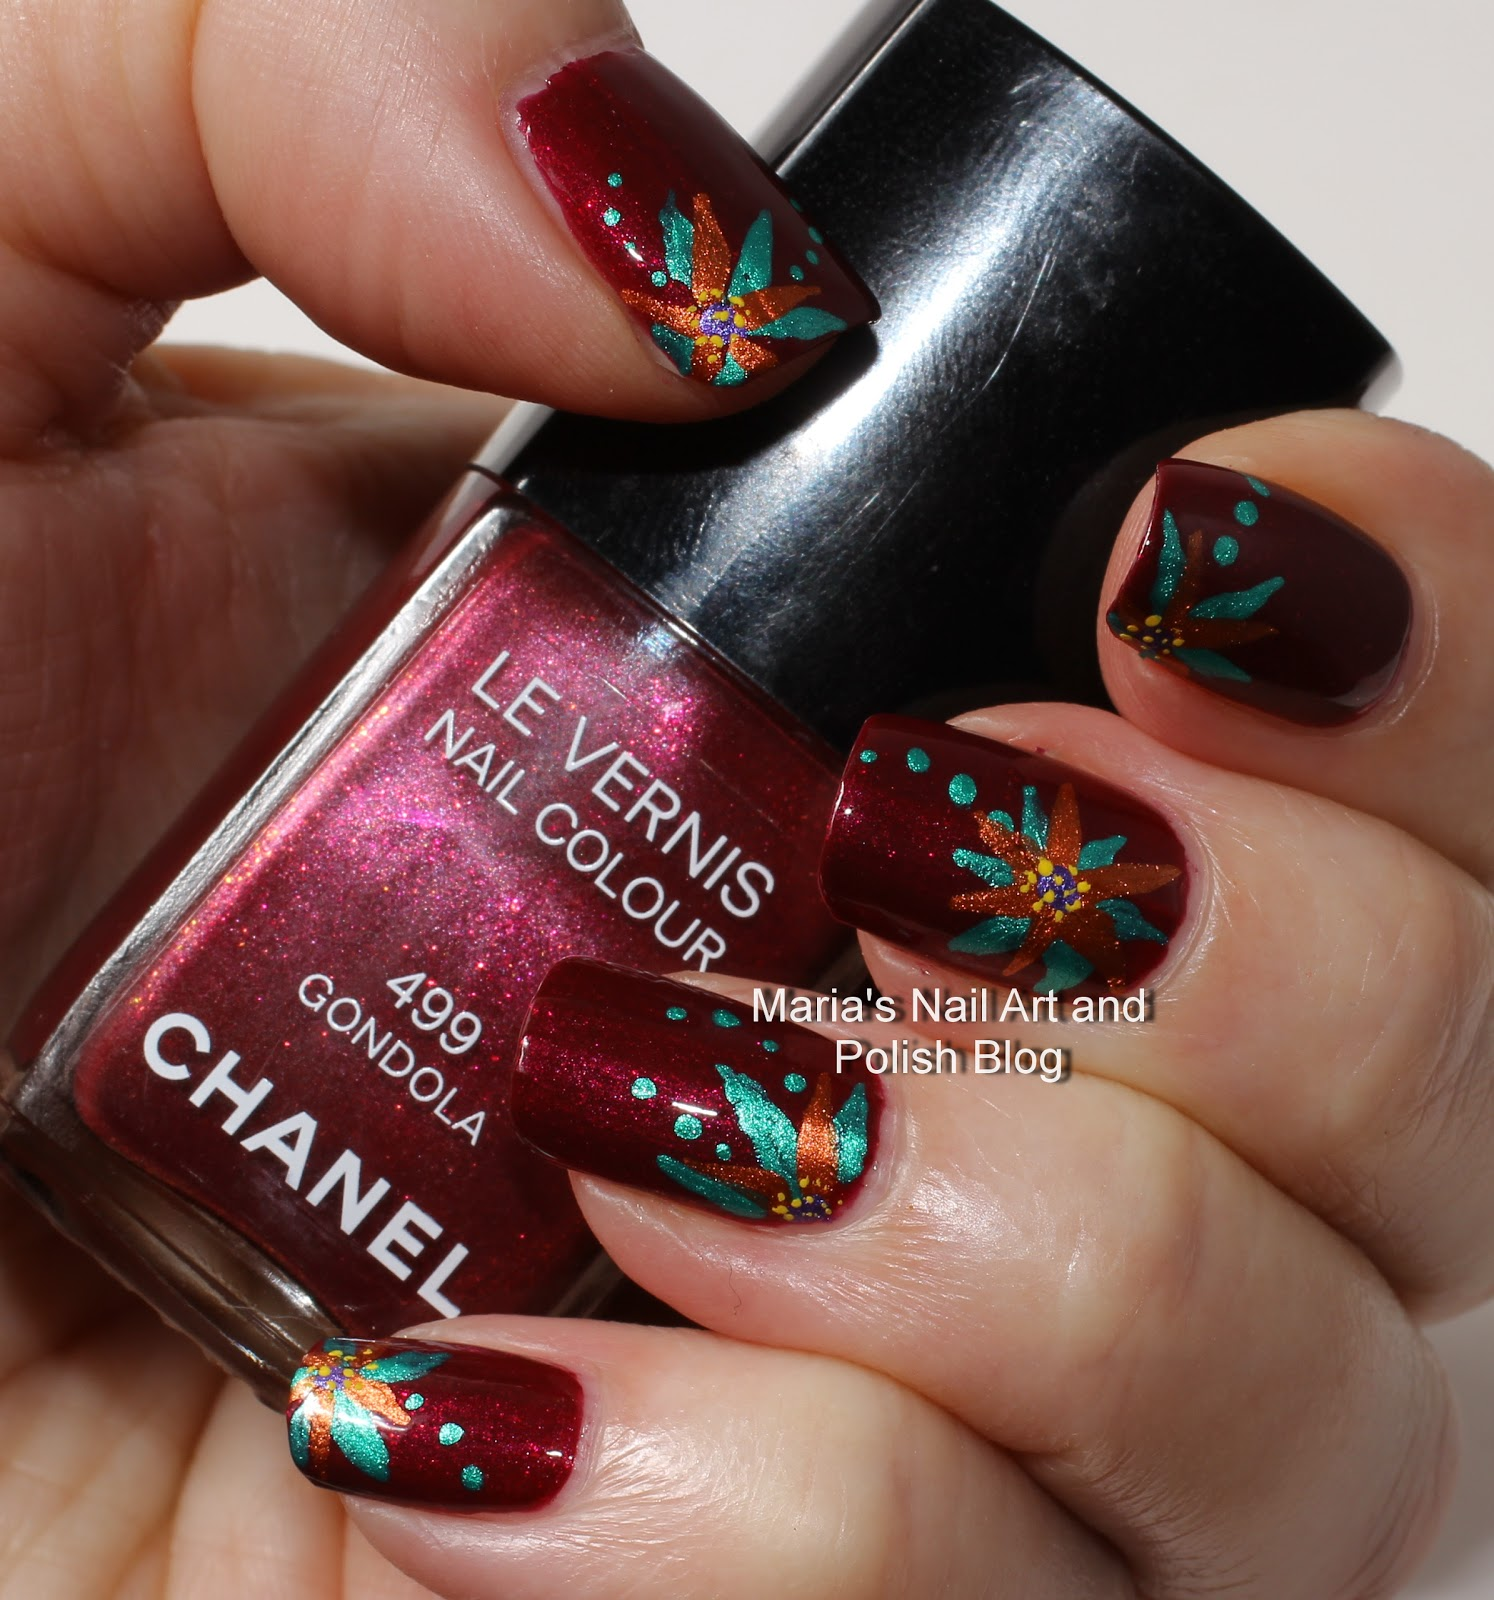 Marias Nail Art And Polish Blog Subtle Floral Nail Art On: Marias Nail Art And Polish Blog: Gondola Flowers